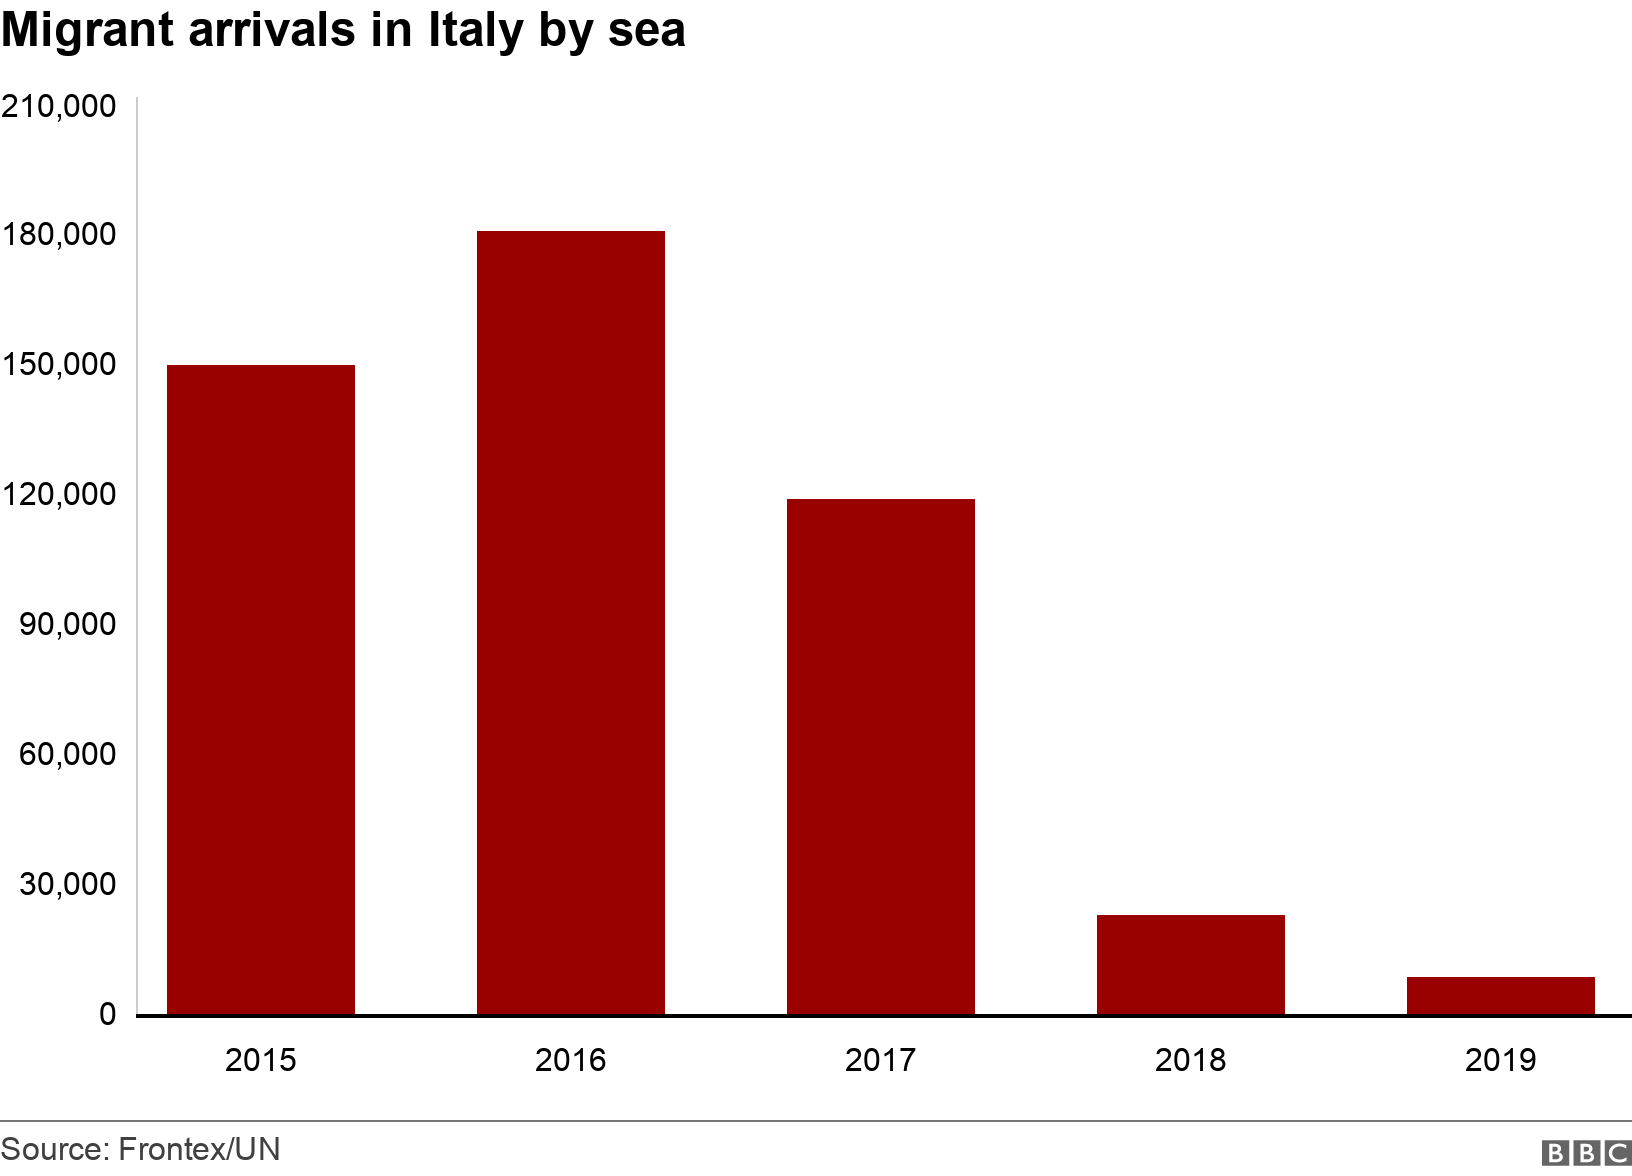 Migrant arrivals in Italy by sea. . A bar chart showing the numbers of migrants arriving by boat in Italy .